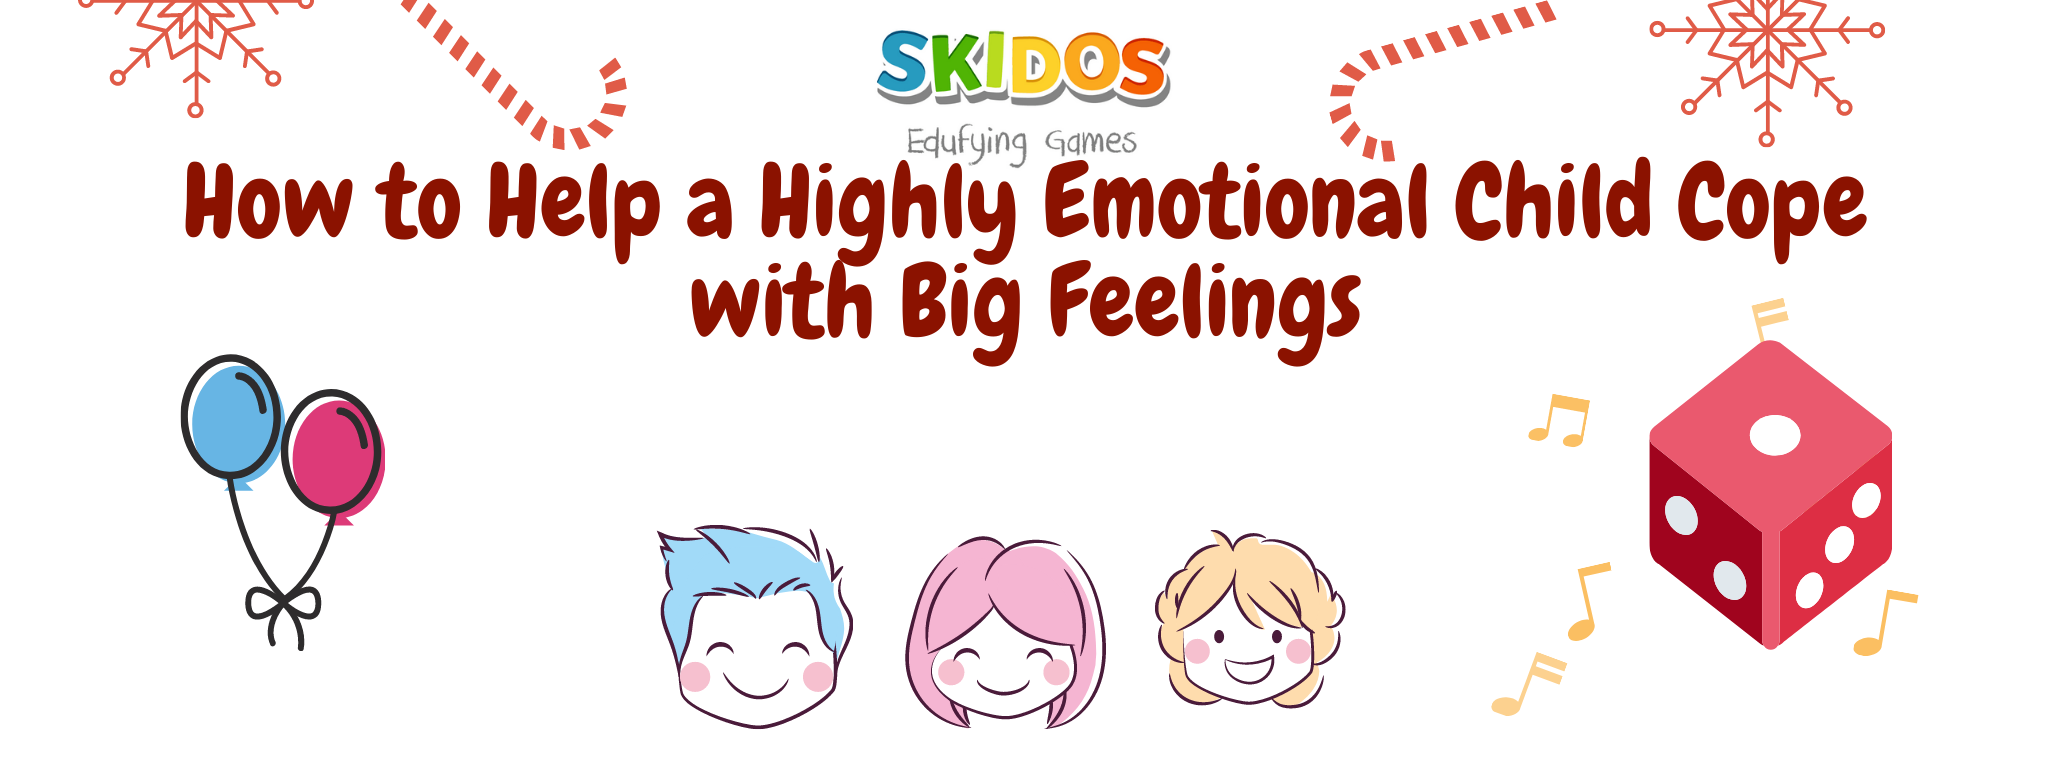 How to Help a Highly Emotional Child Cope with Big Feelings